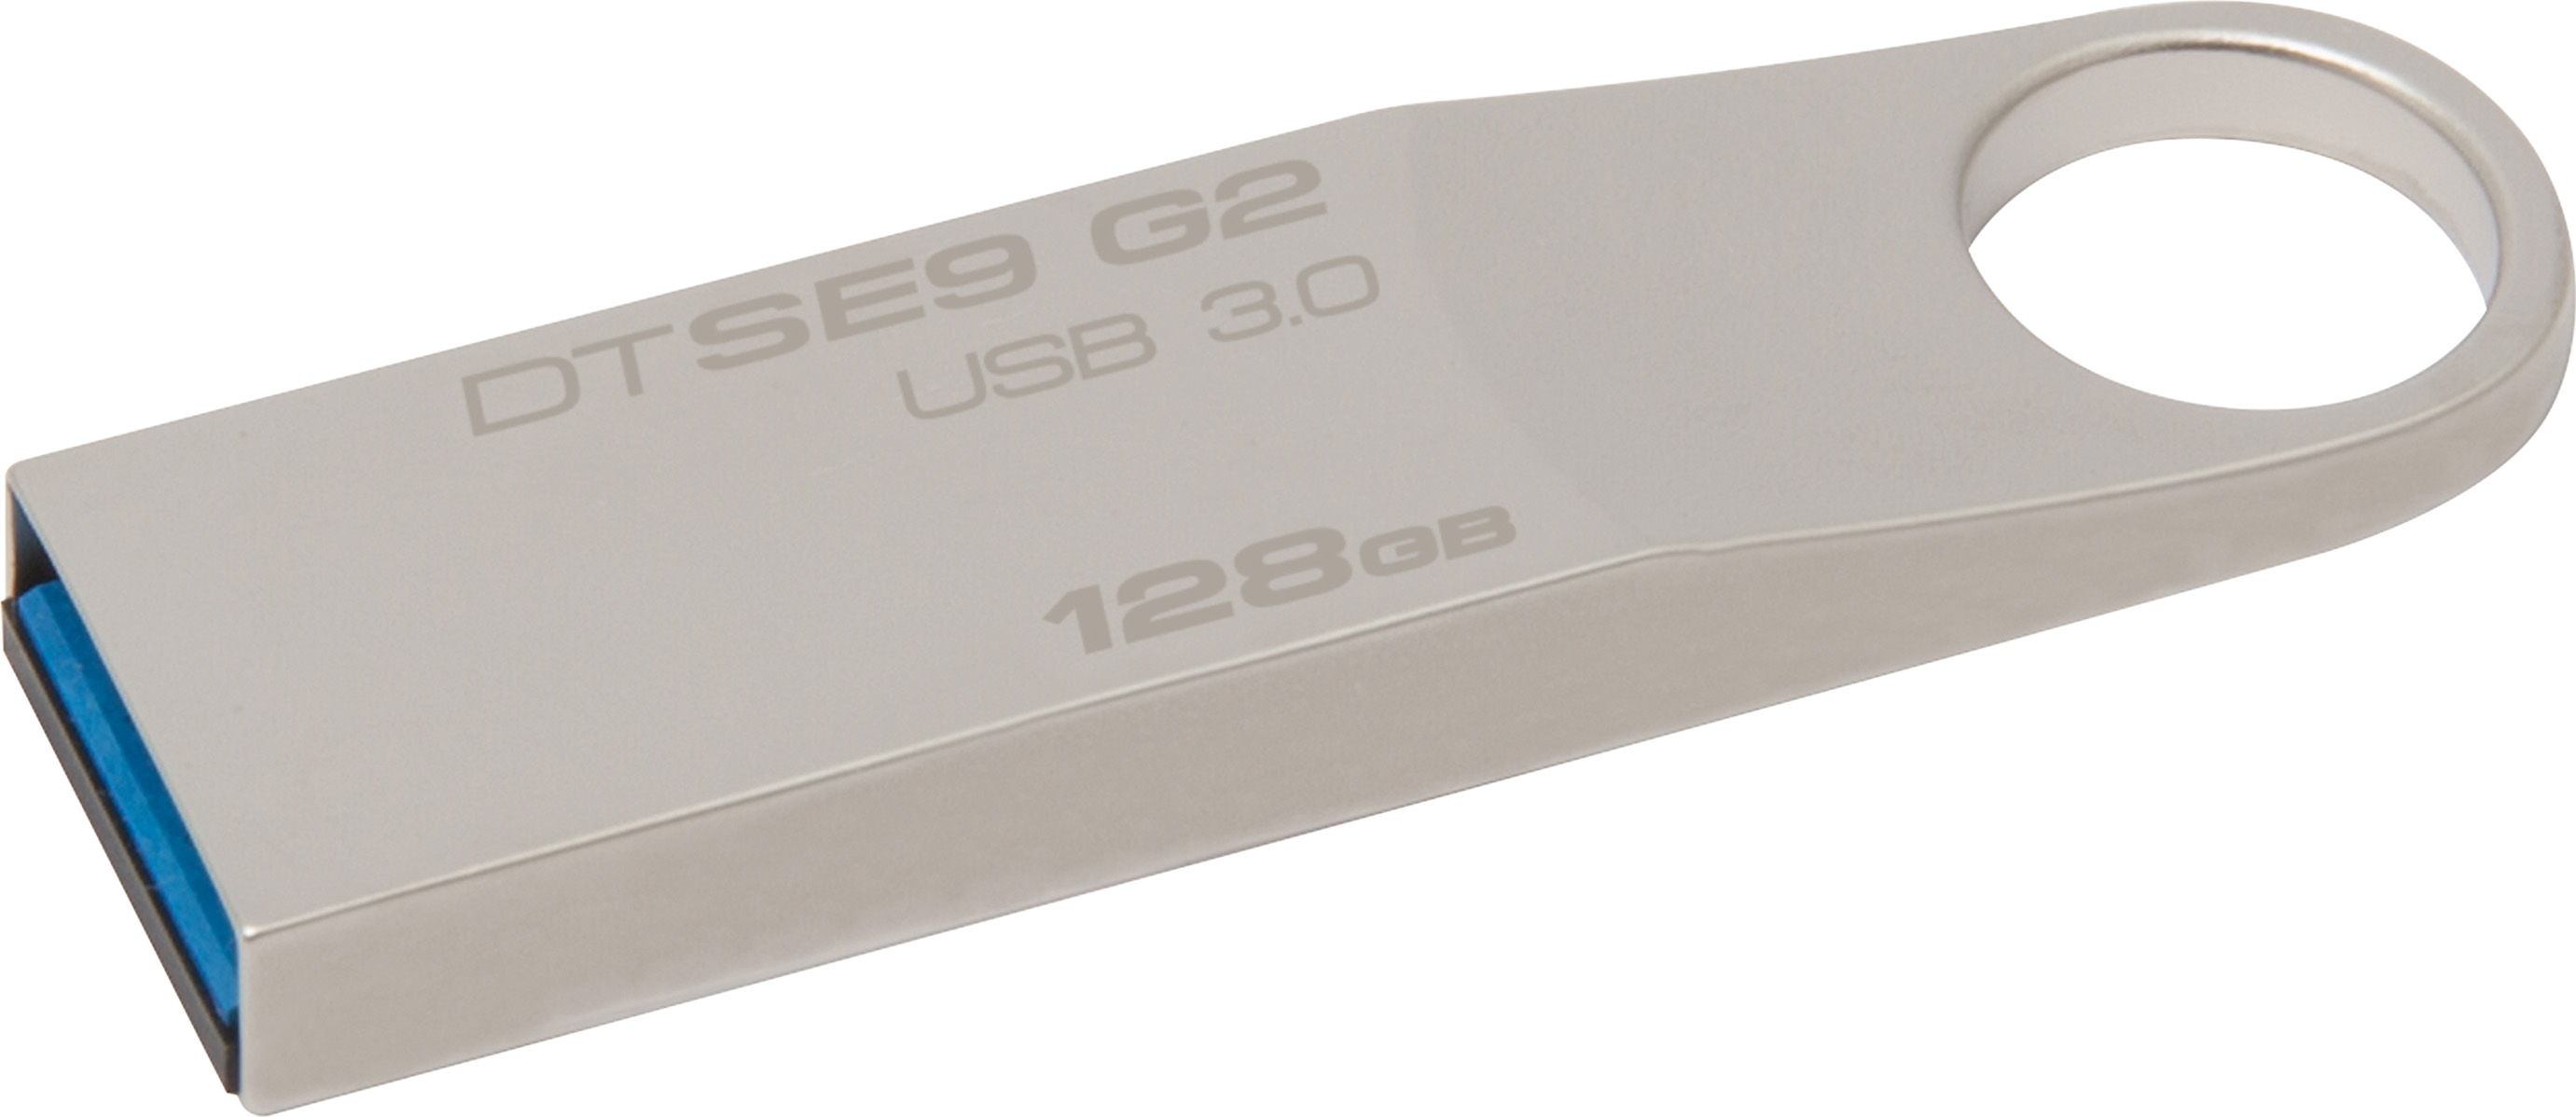 Kingston DataTraveler SE9 G2 USB 3.0 (128GB) Deal